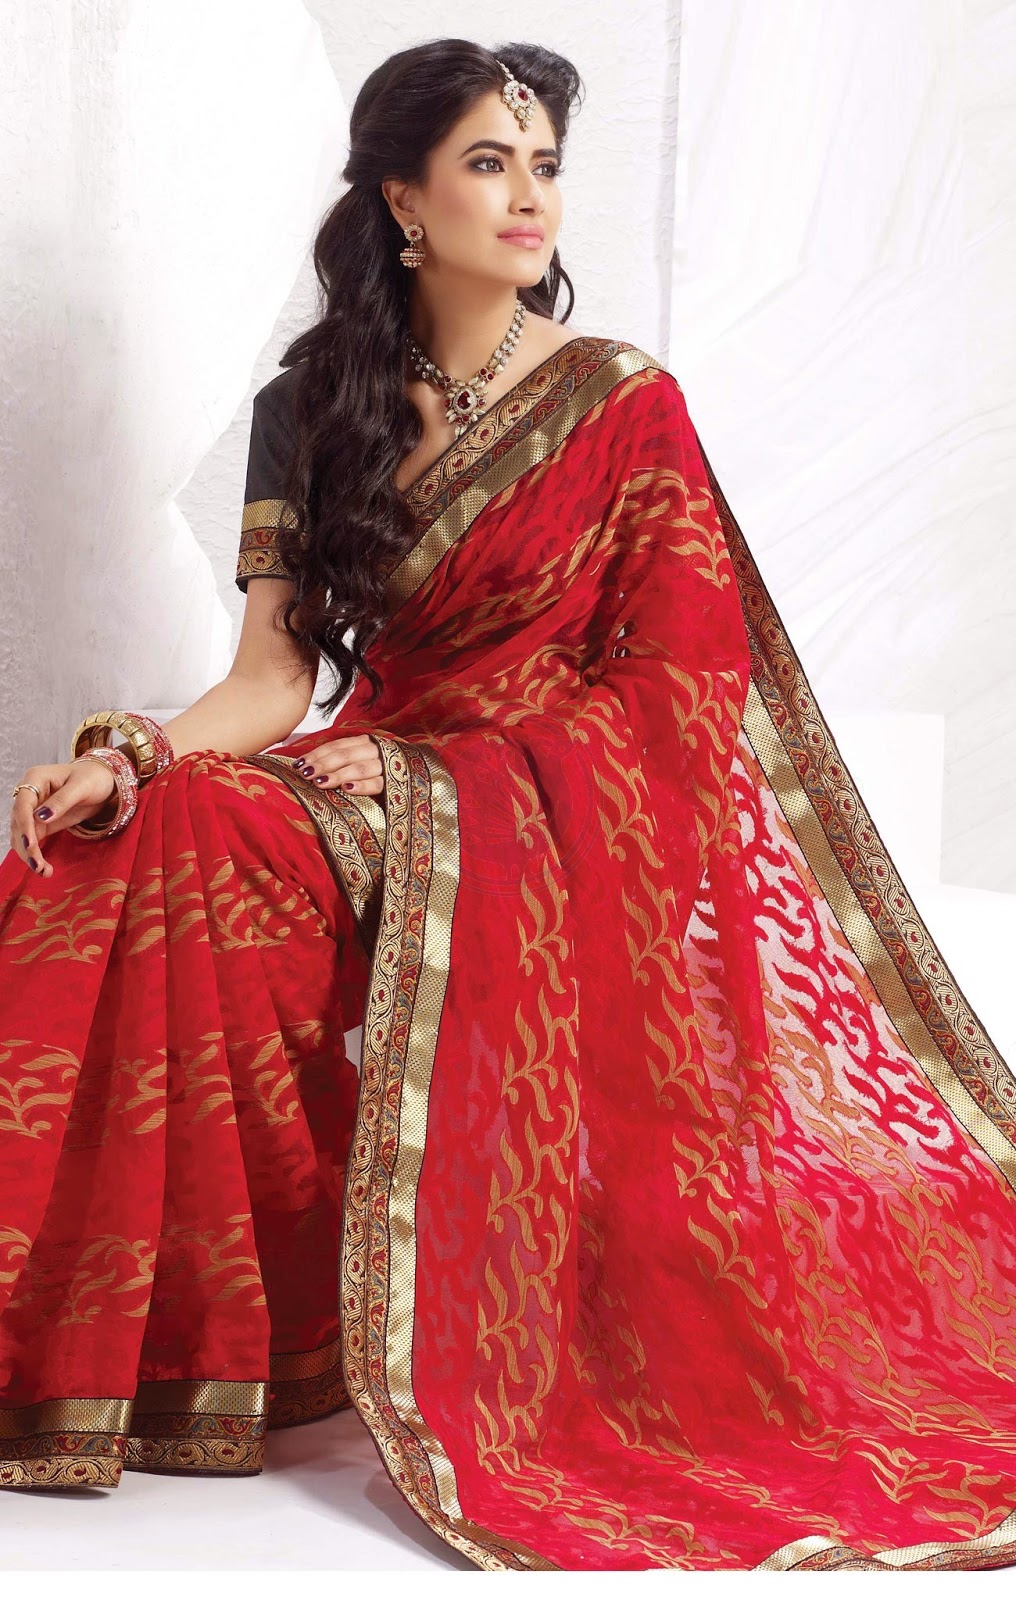 Chennai Silks sari collections